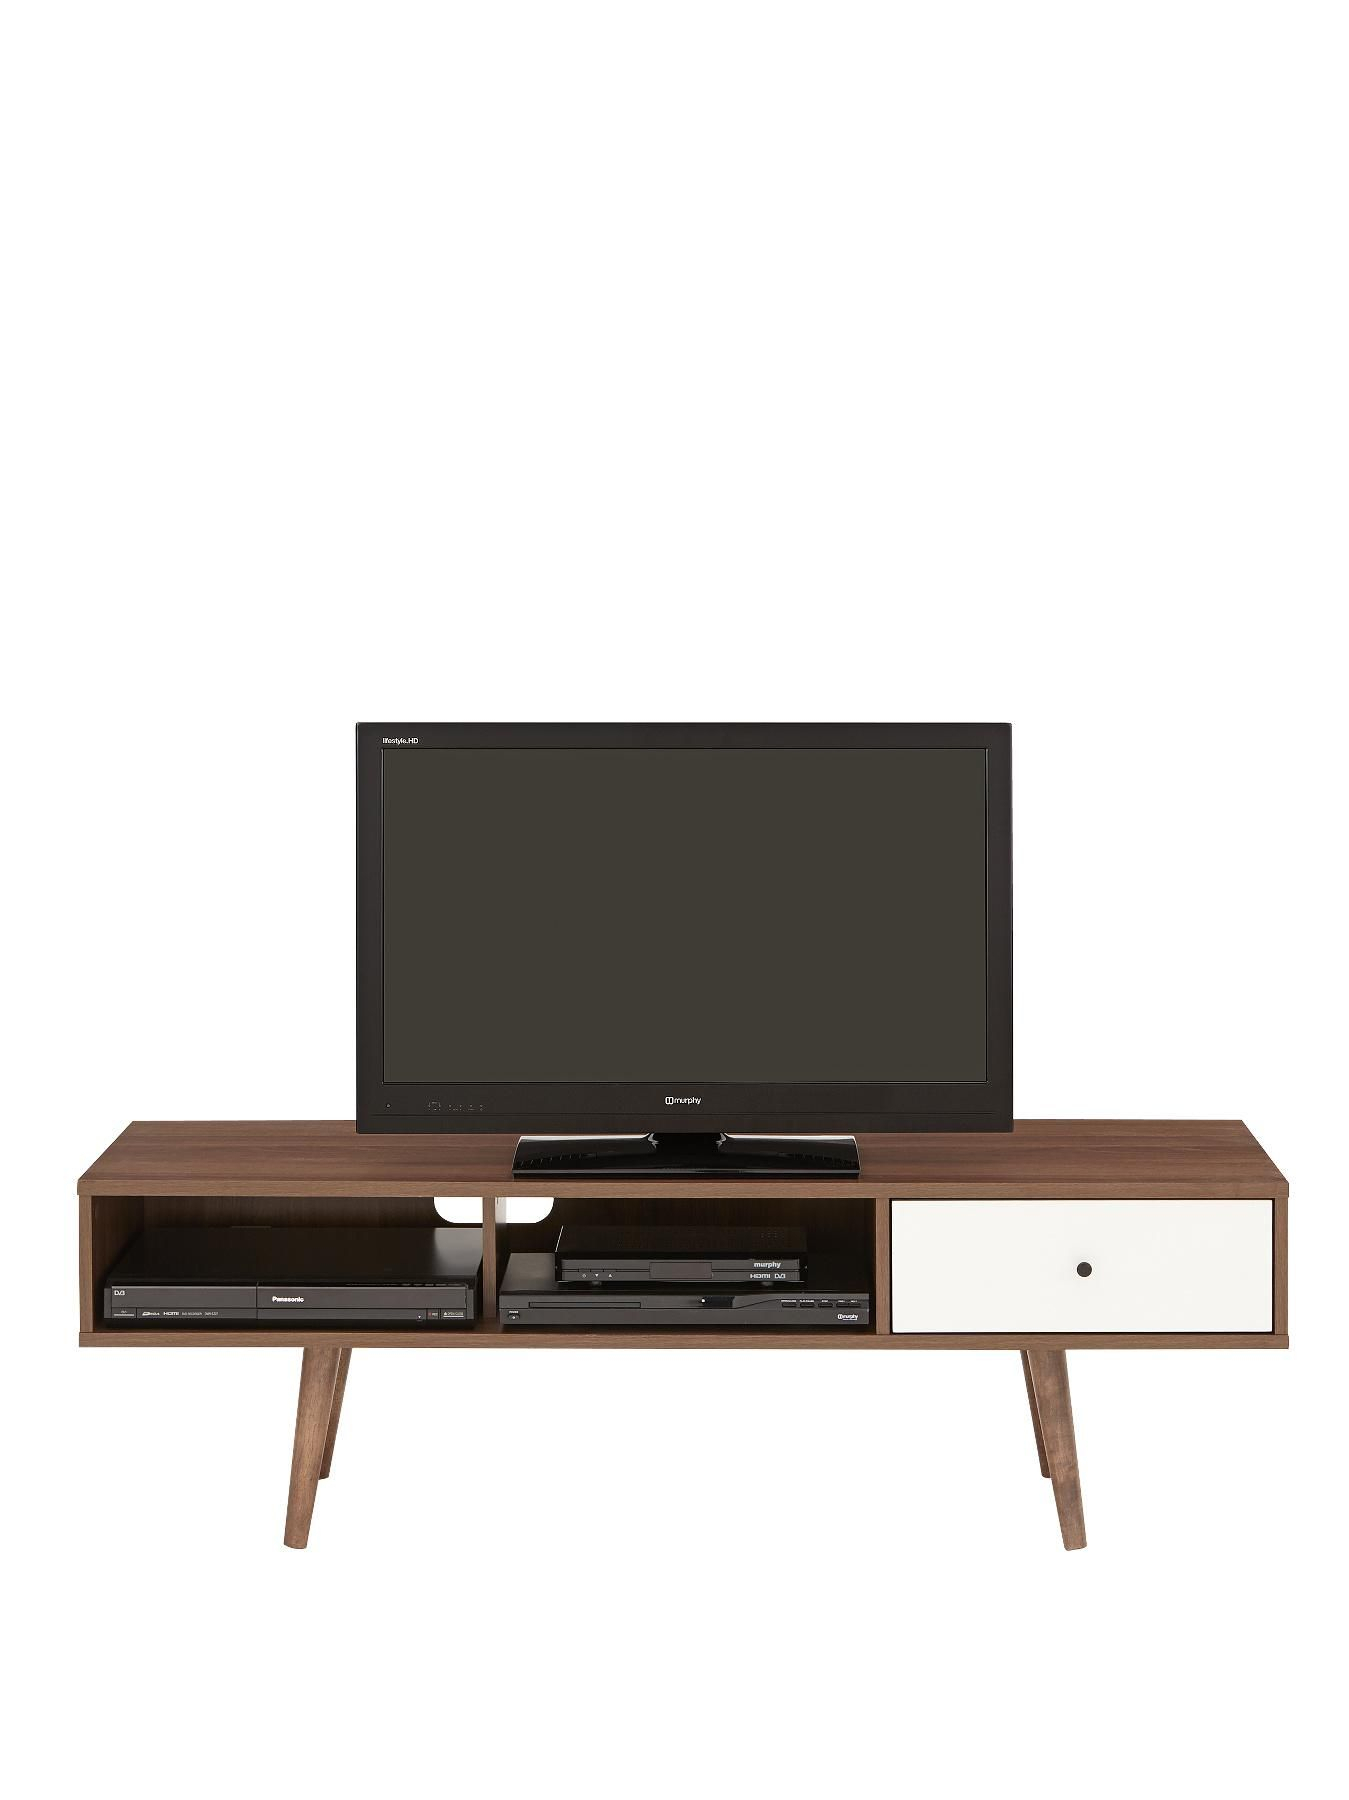 Monty Retro Tv Unit – Fits Up To 60 Inch Tv | Living Room For Century White 60 Inch Tv Stands (View 16 of 30)